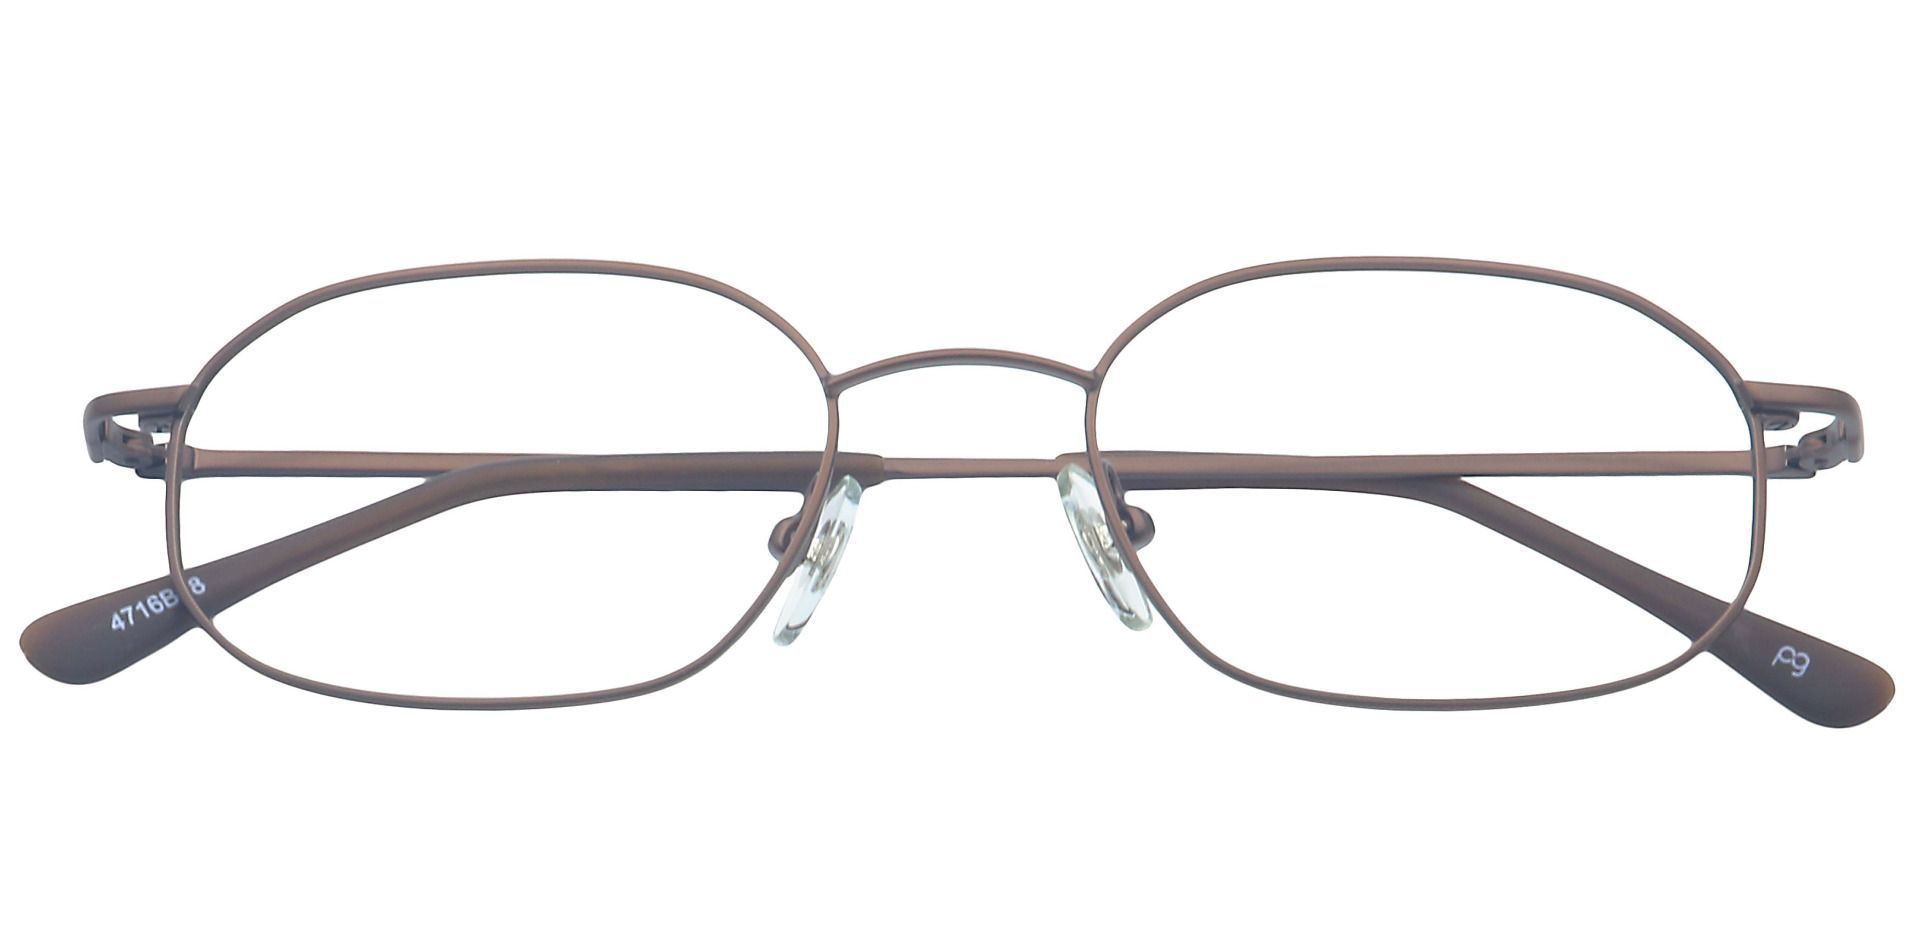 Parker Oval Progressive Glasses - Brown